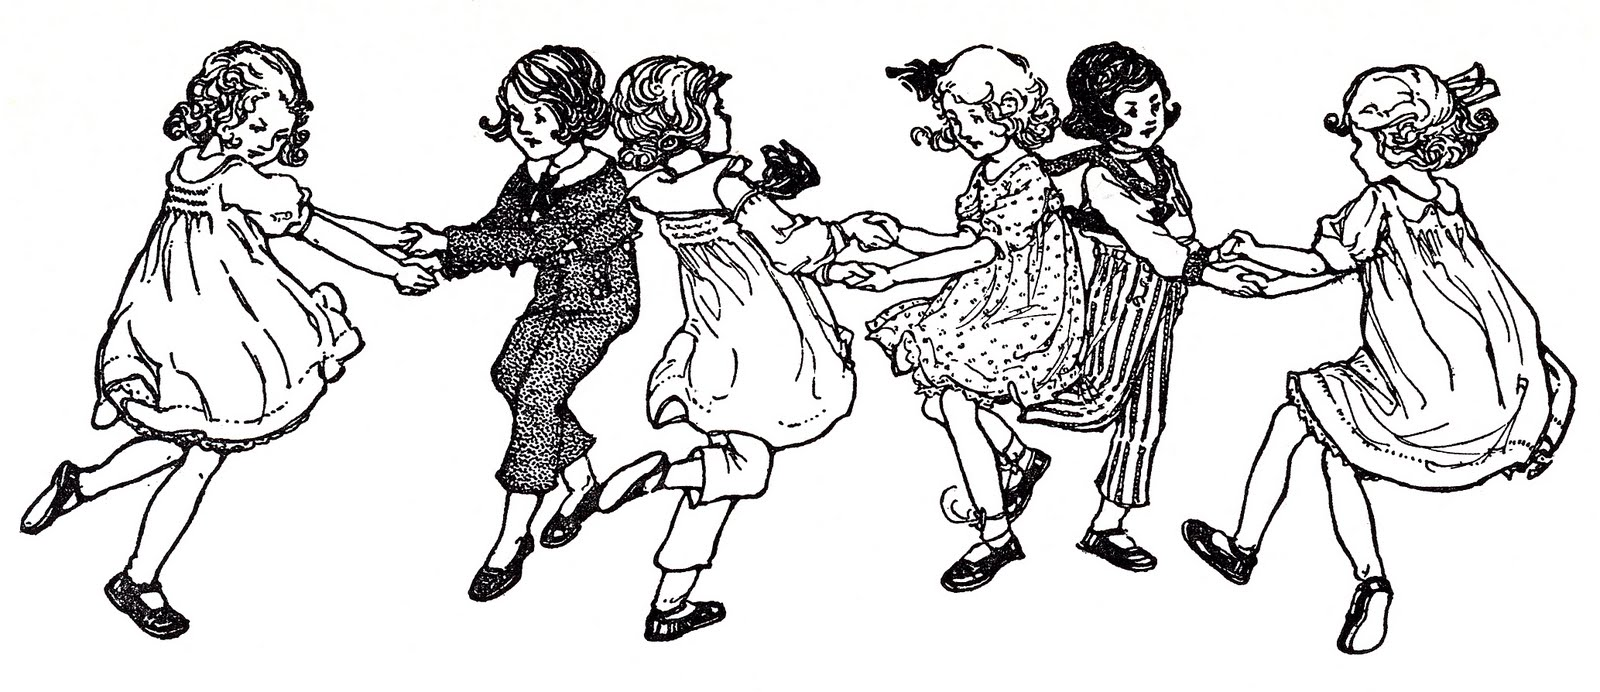 Vintage Image Children Dancing Swedish Song The Graphics Fairy